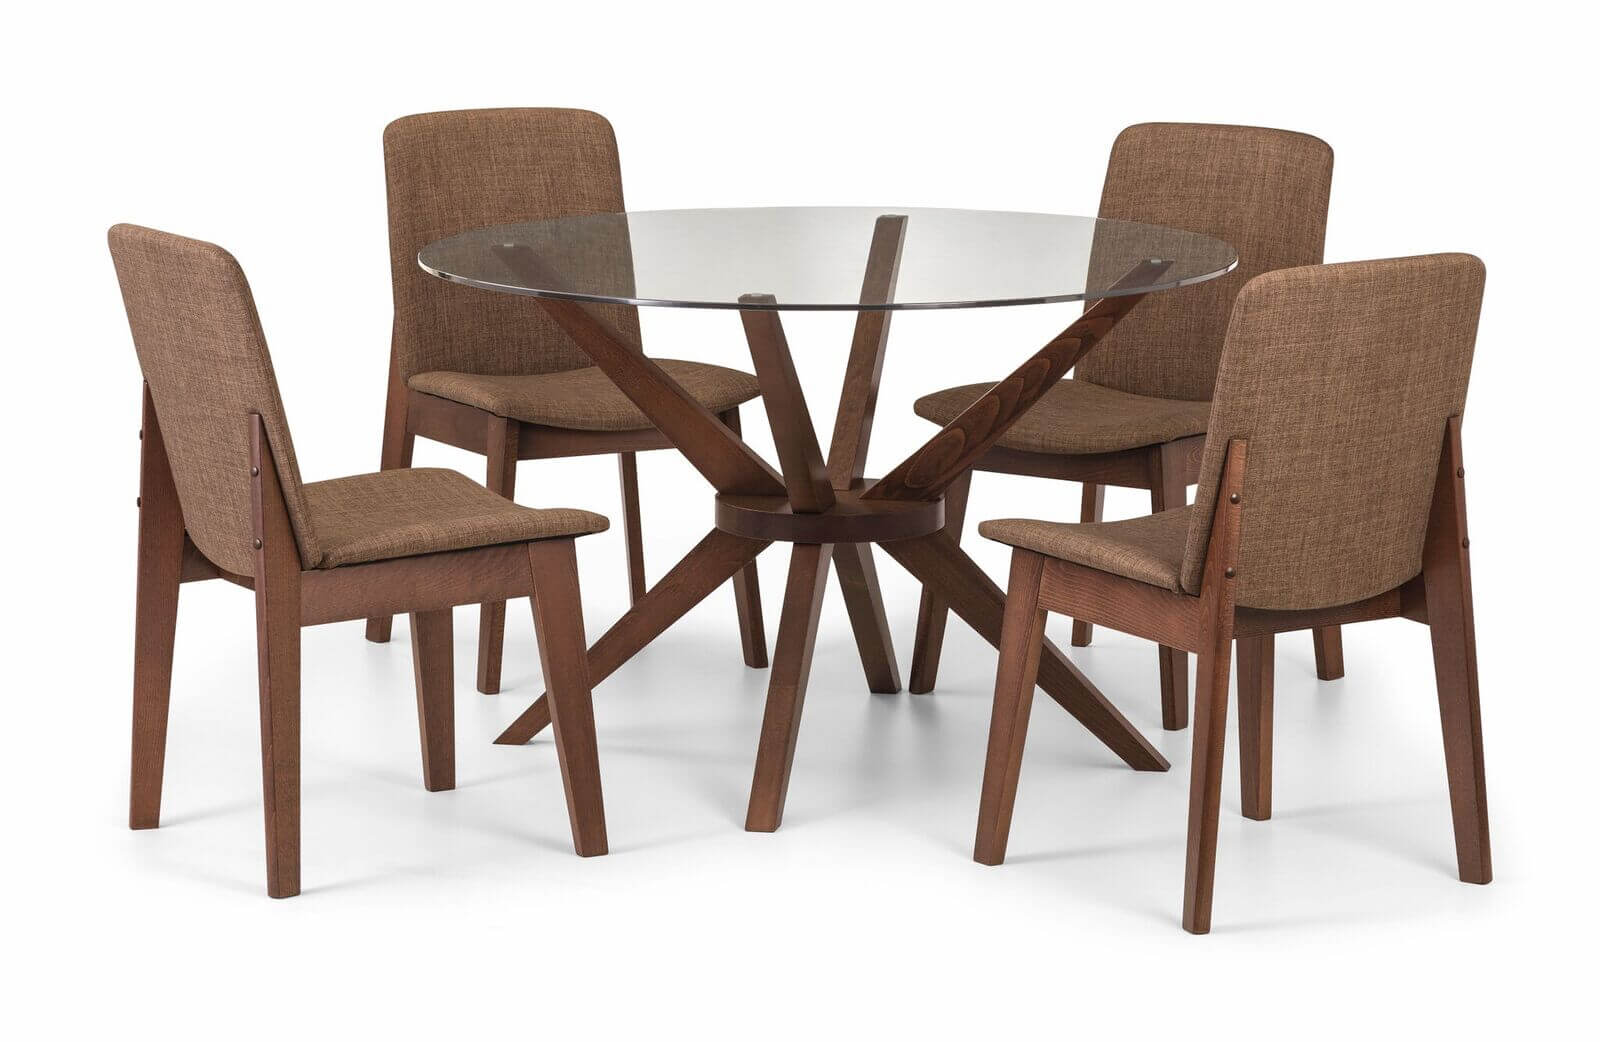 Chelsea Table Kensington chair